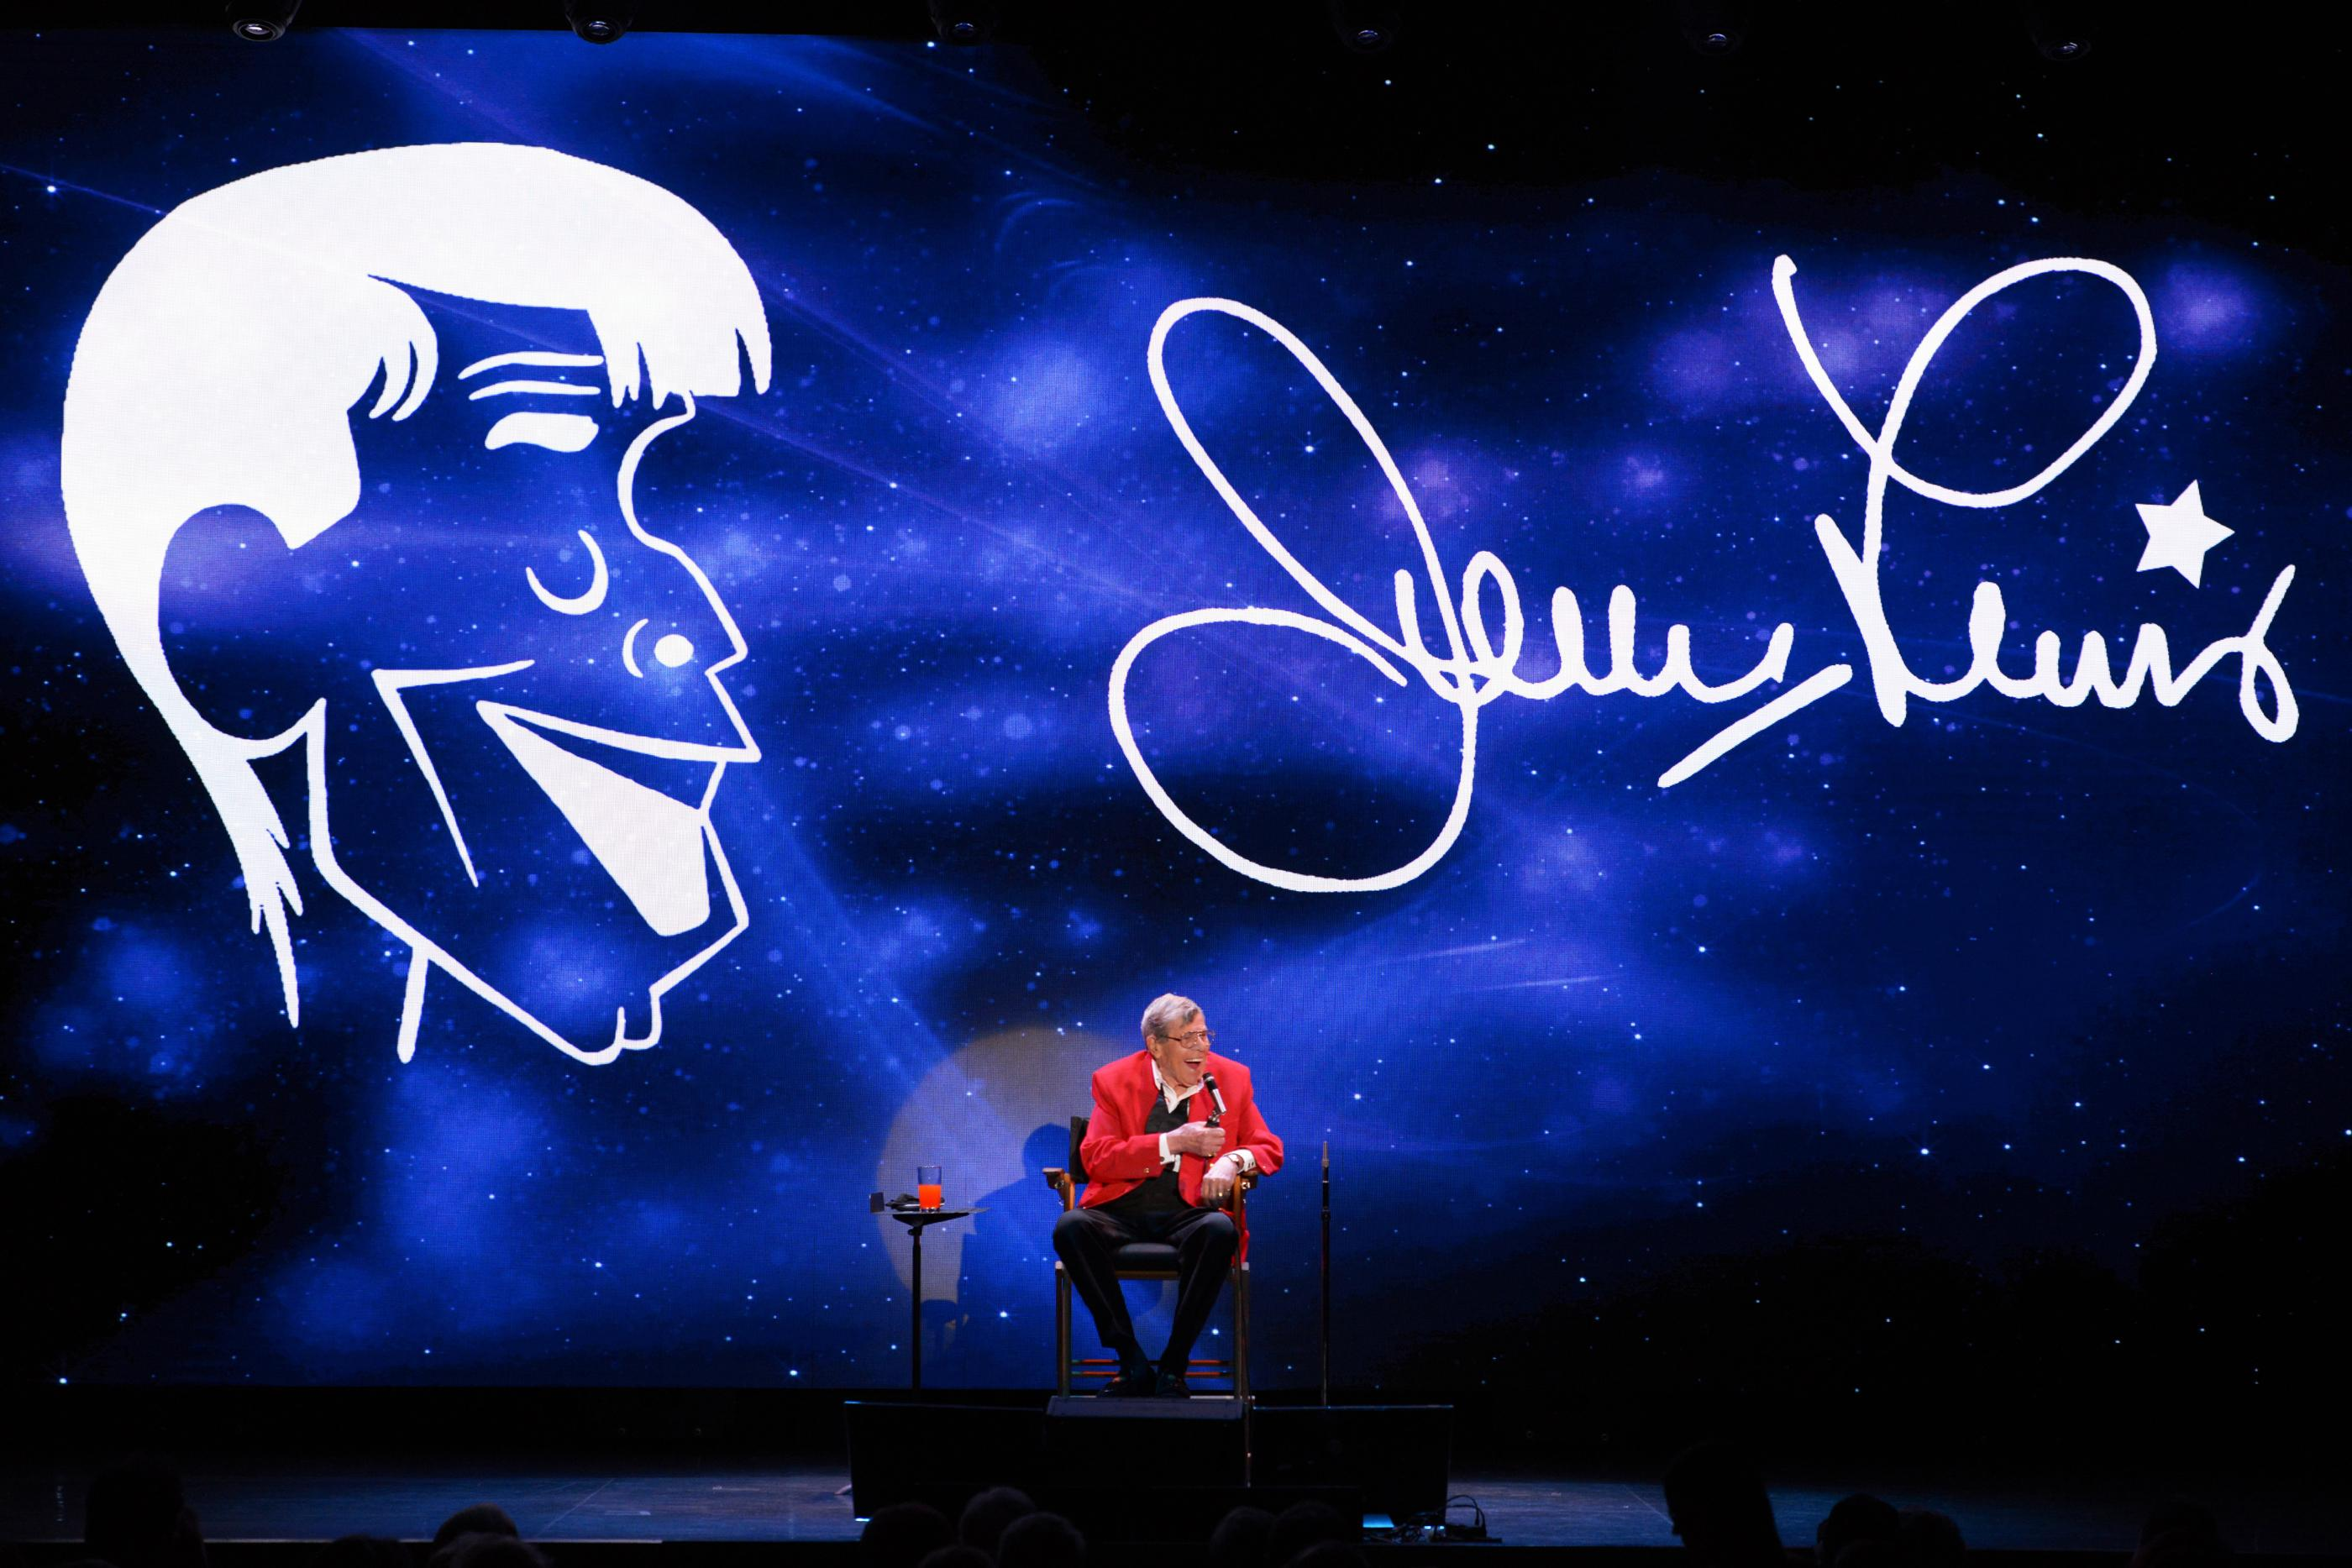 Jerry Lewis onstage during his final performance at the South Point Hotel-Casino in Las Vegas on Sunday, Oct. 2, 2016. (Sam Morris/Las Vegas News Bureau)